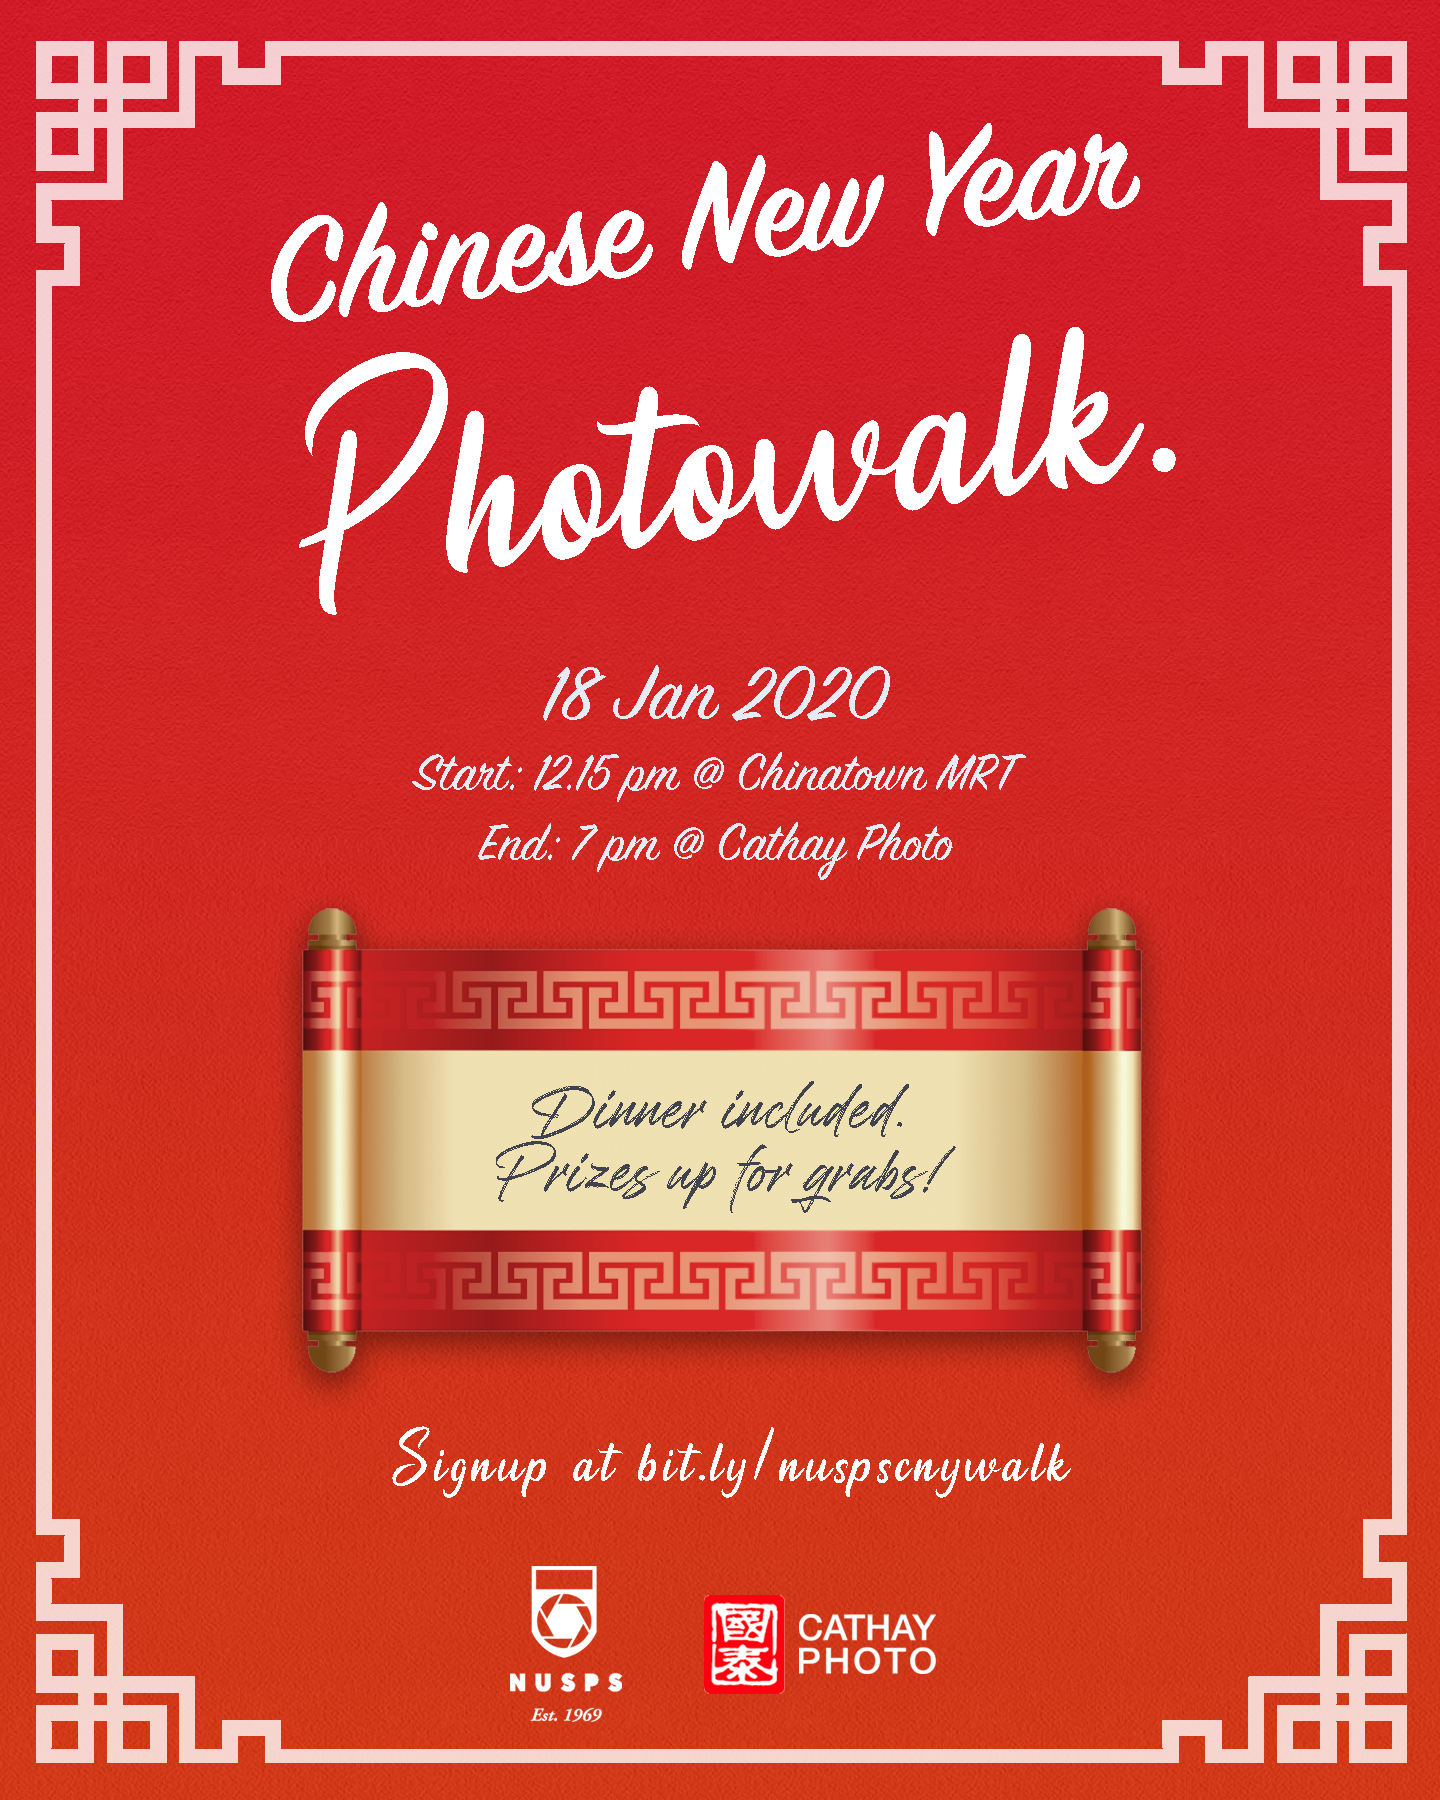 Chinese New Year Photowalk and Competition 2020